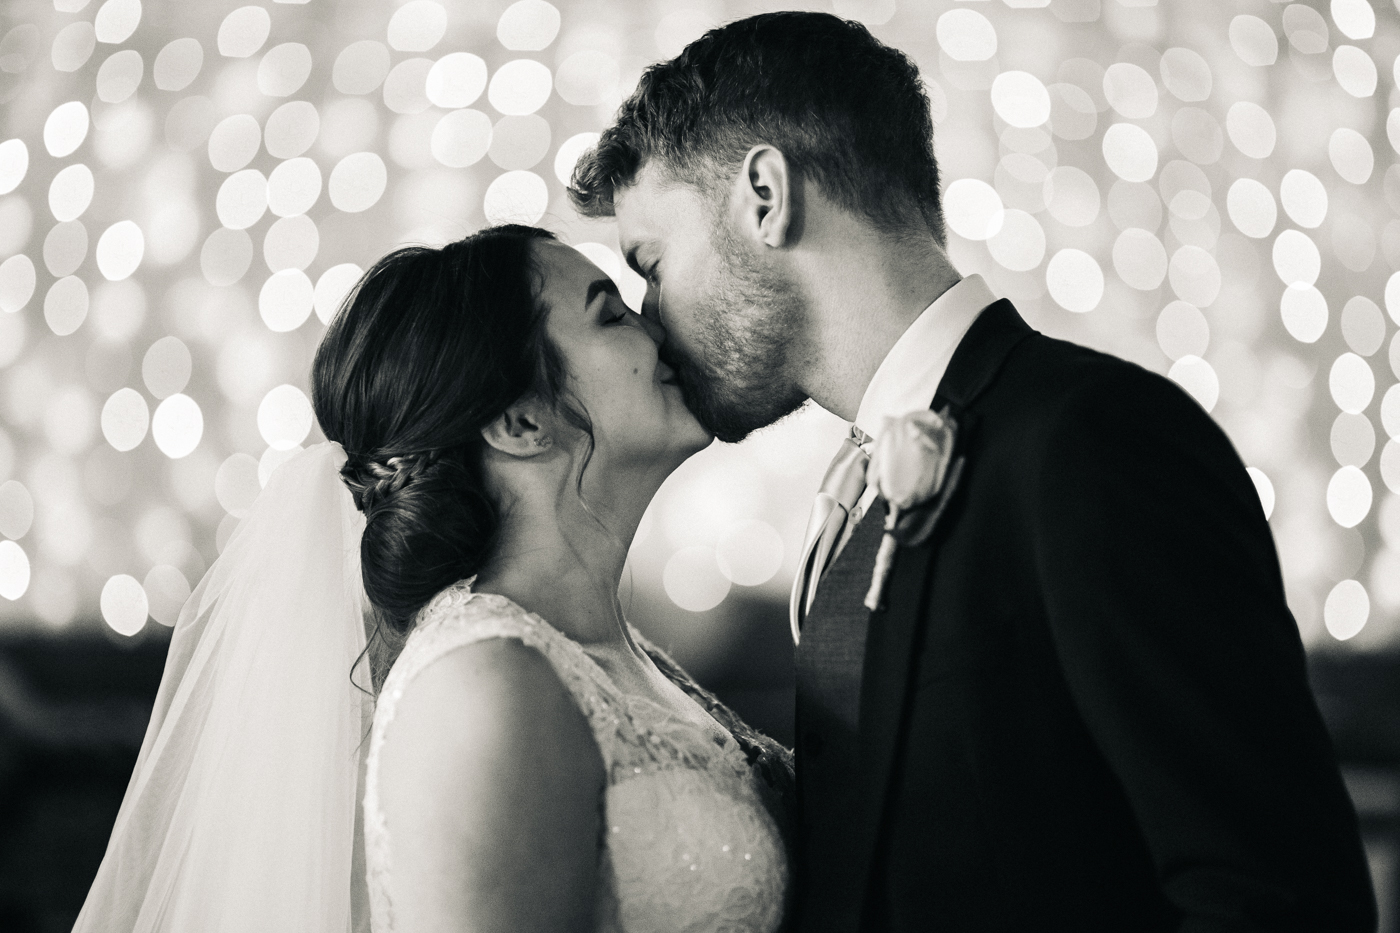 the bride and groom kiss in front of fairylights. spring barn wedding at east riddlesden hall keighley west yorkshire wedding photographer